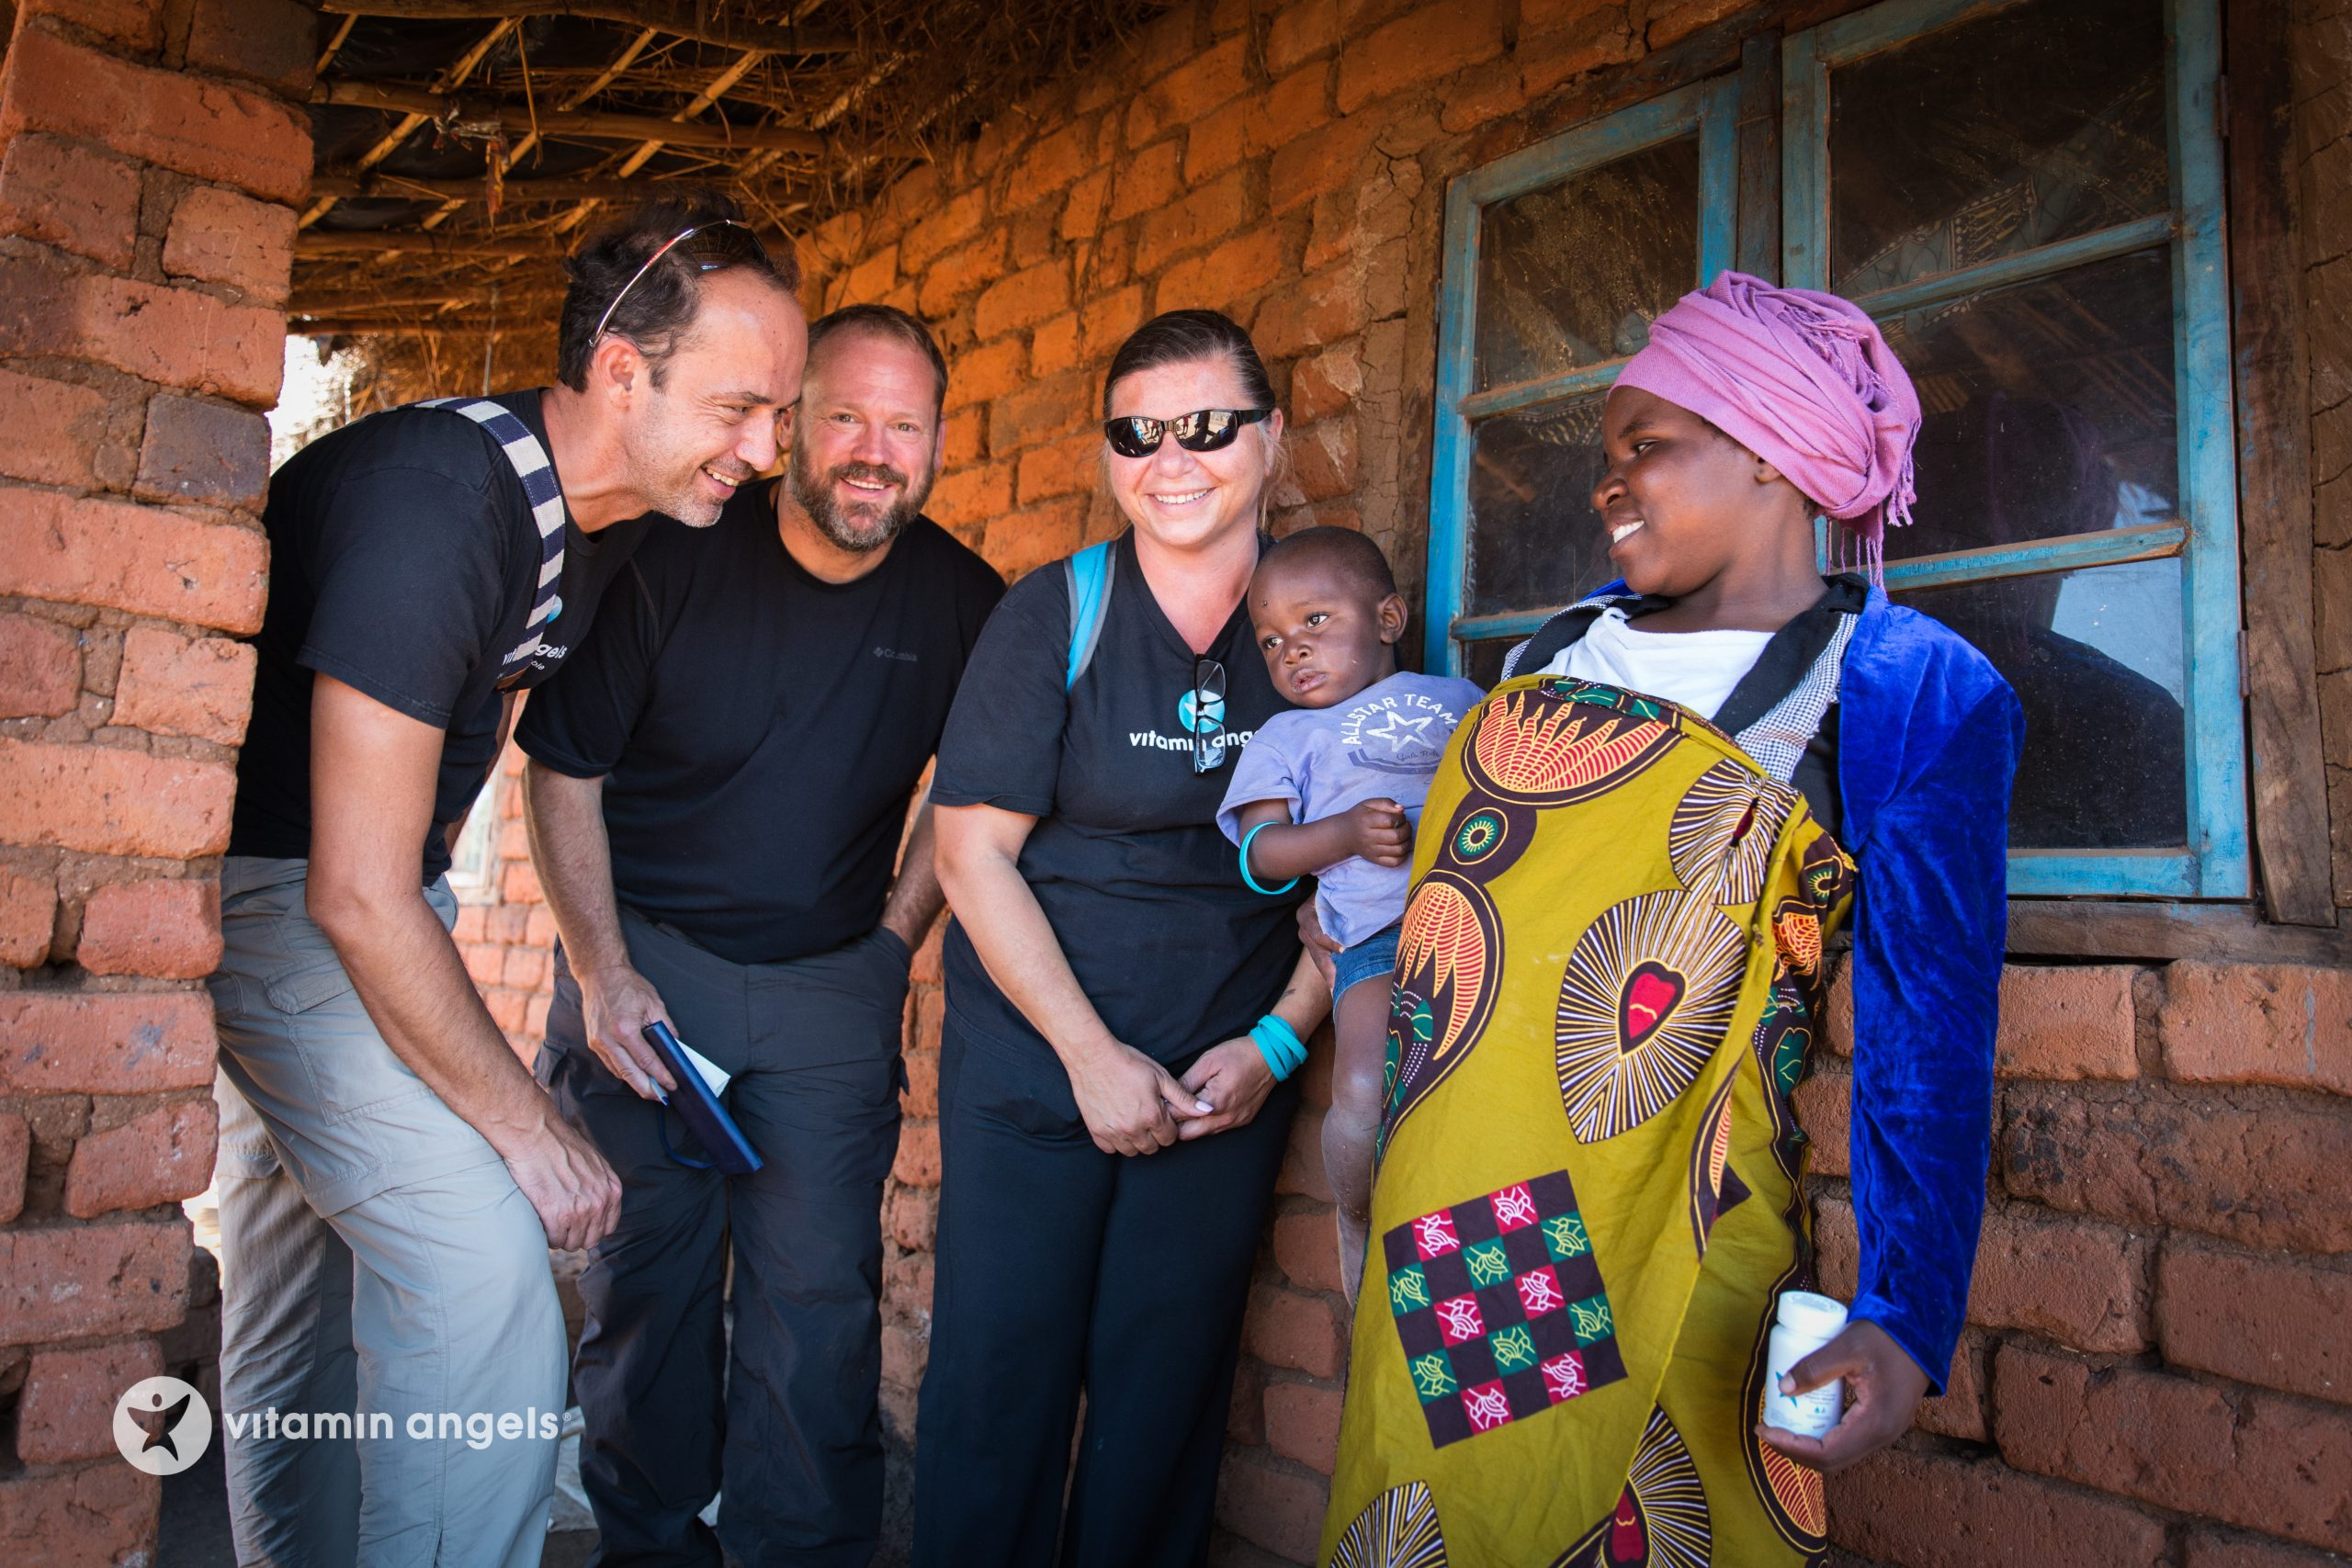 Visiting Malawi with Vitamin Angels